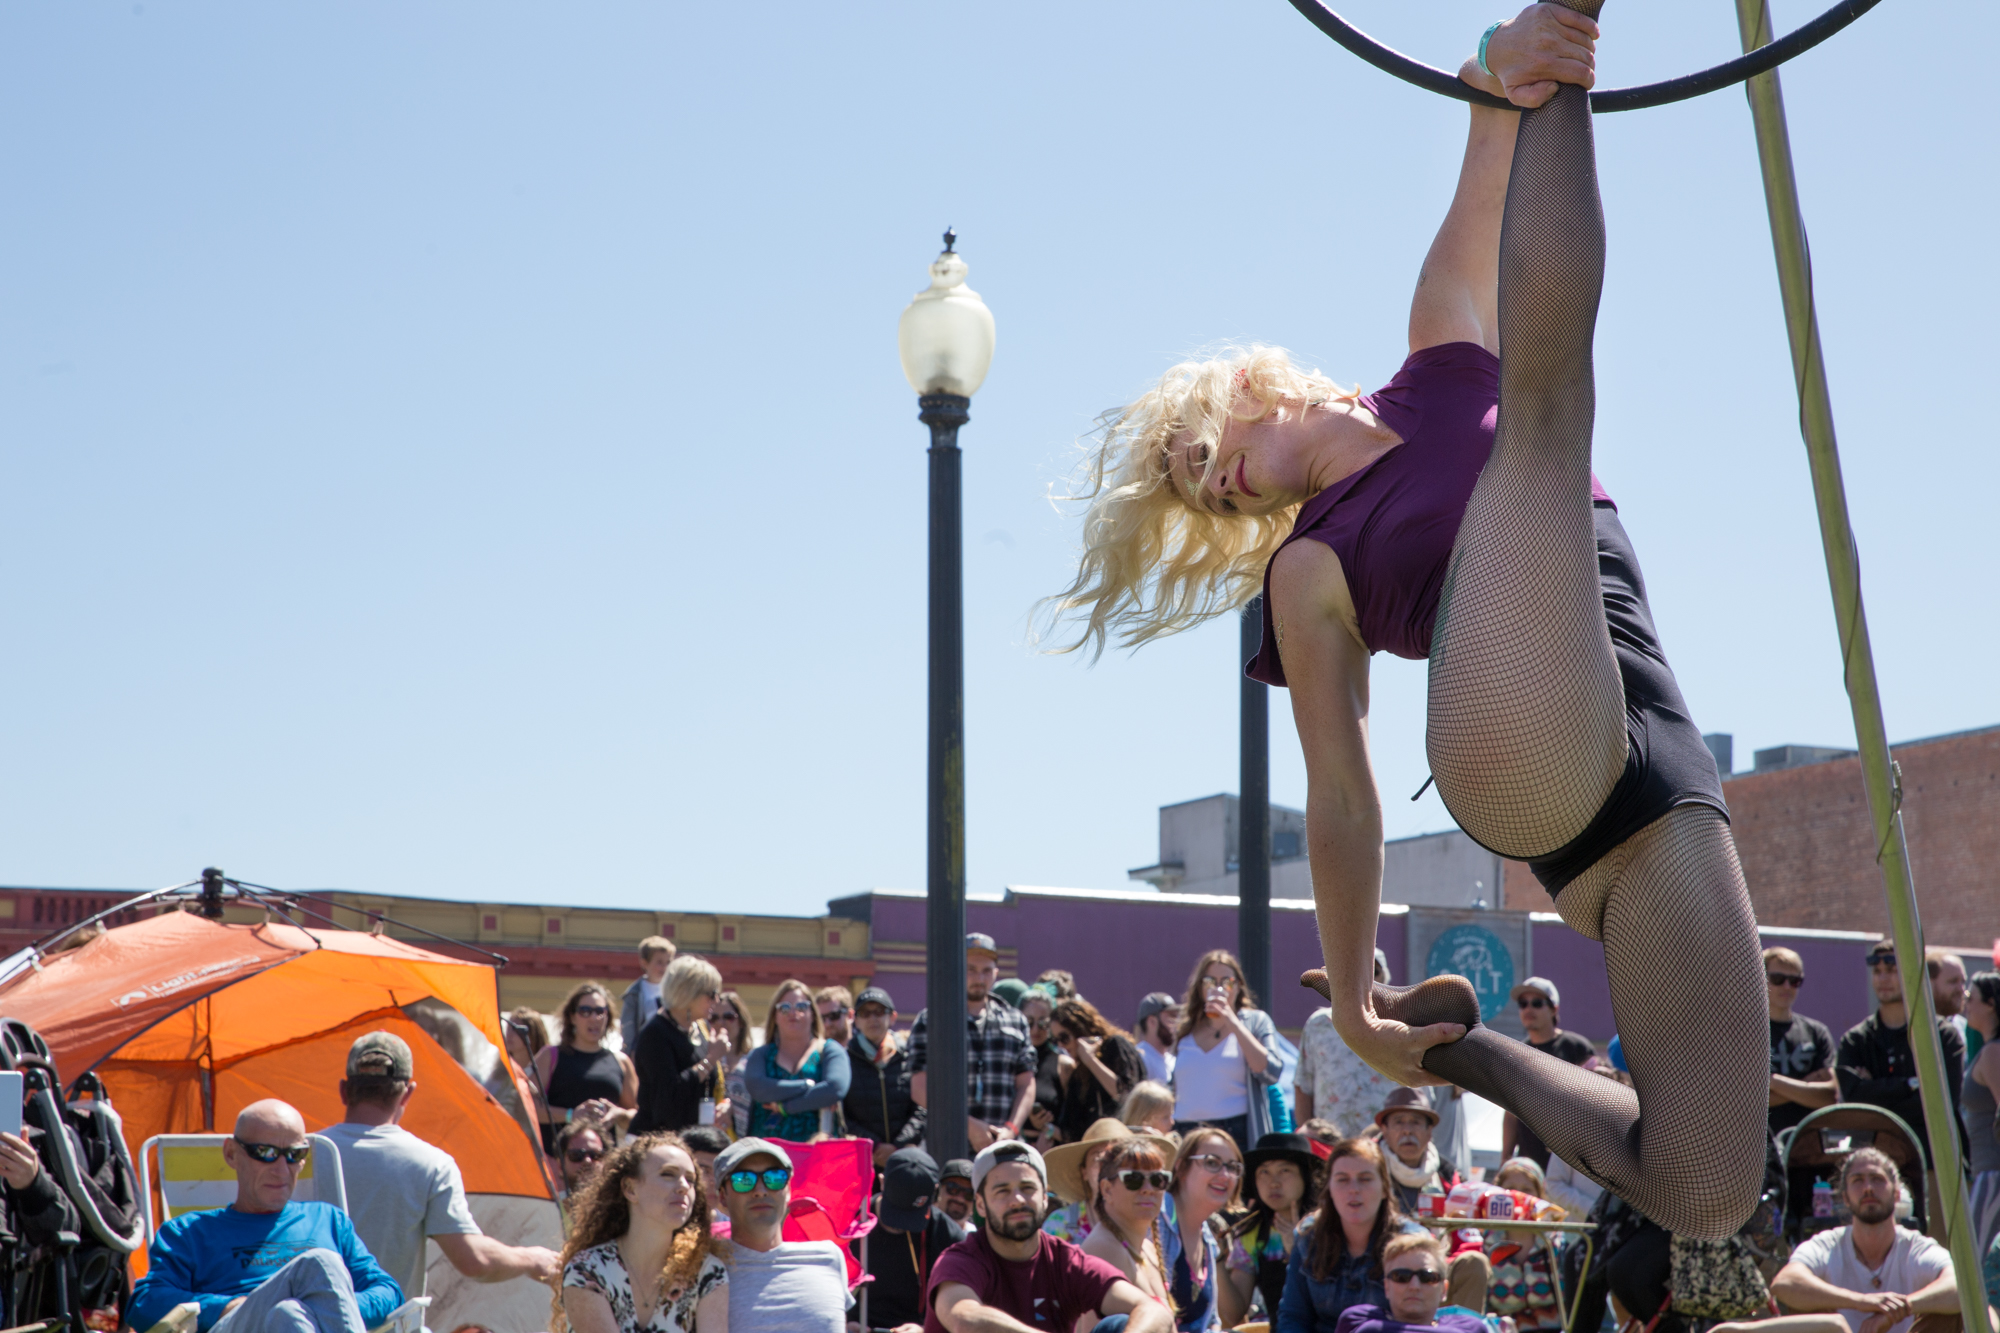 Aerial Oyster Fest selects-9.jpg